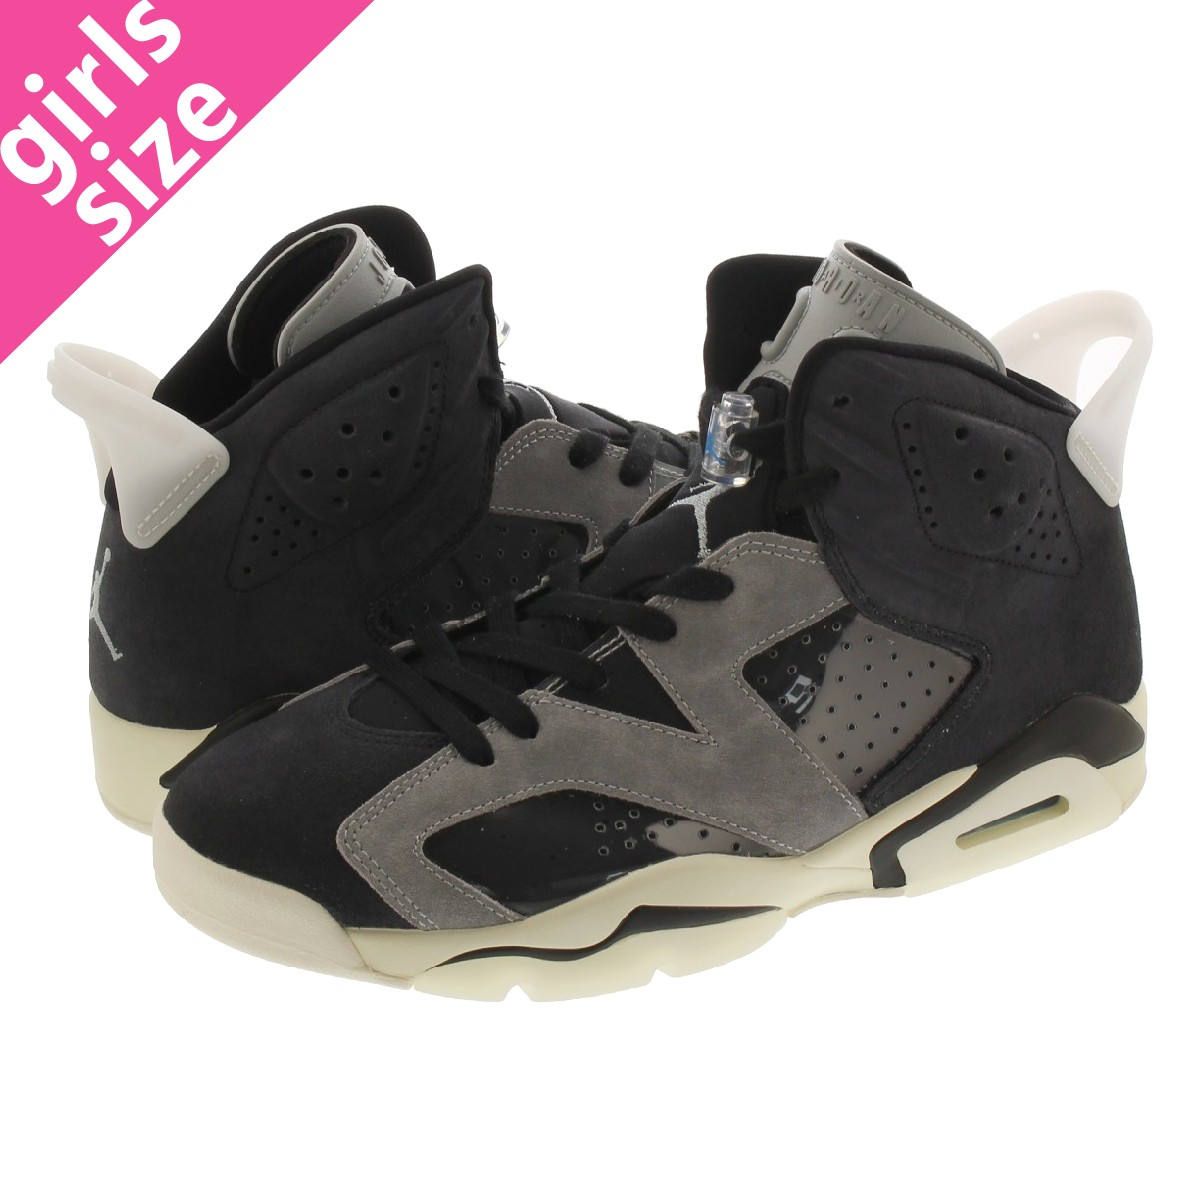 NIKE WMNS AIR JORDAN 6 RETRO 【TECH CHROME】 ナイキ ウィメンズ エア ジョーダン 6 レトロ BLACK/LIGHT SMOKE GREY/SAIL/CHROME ck6635-001